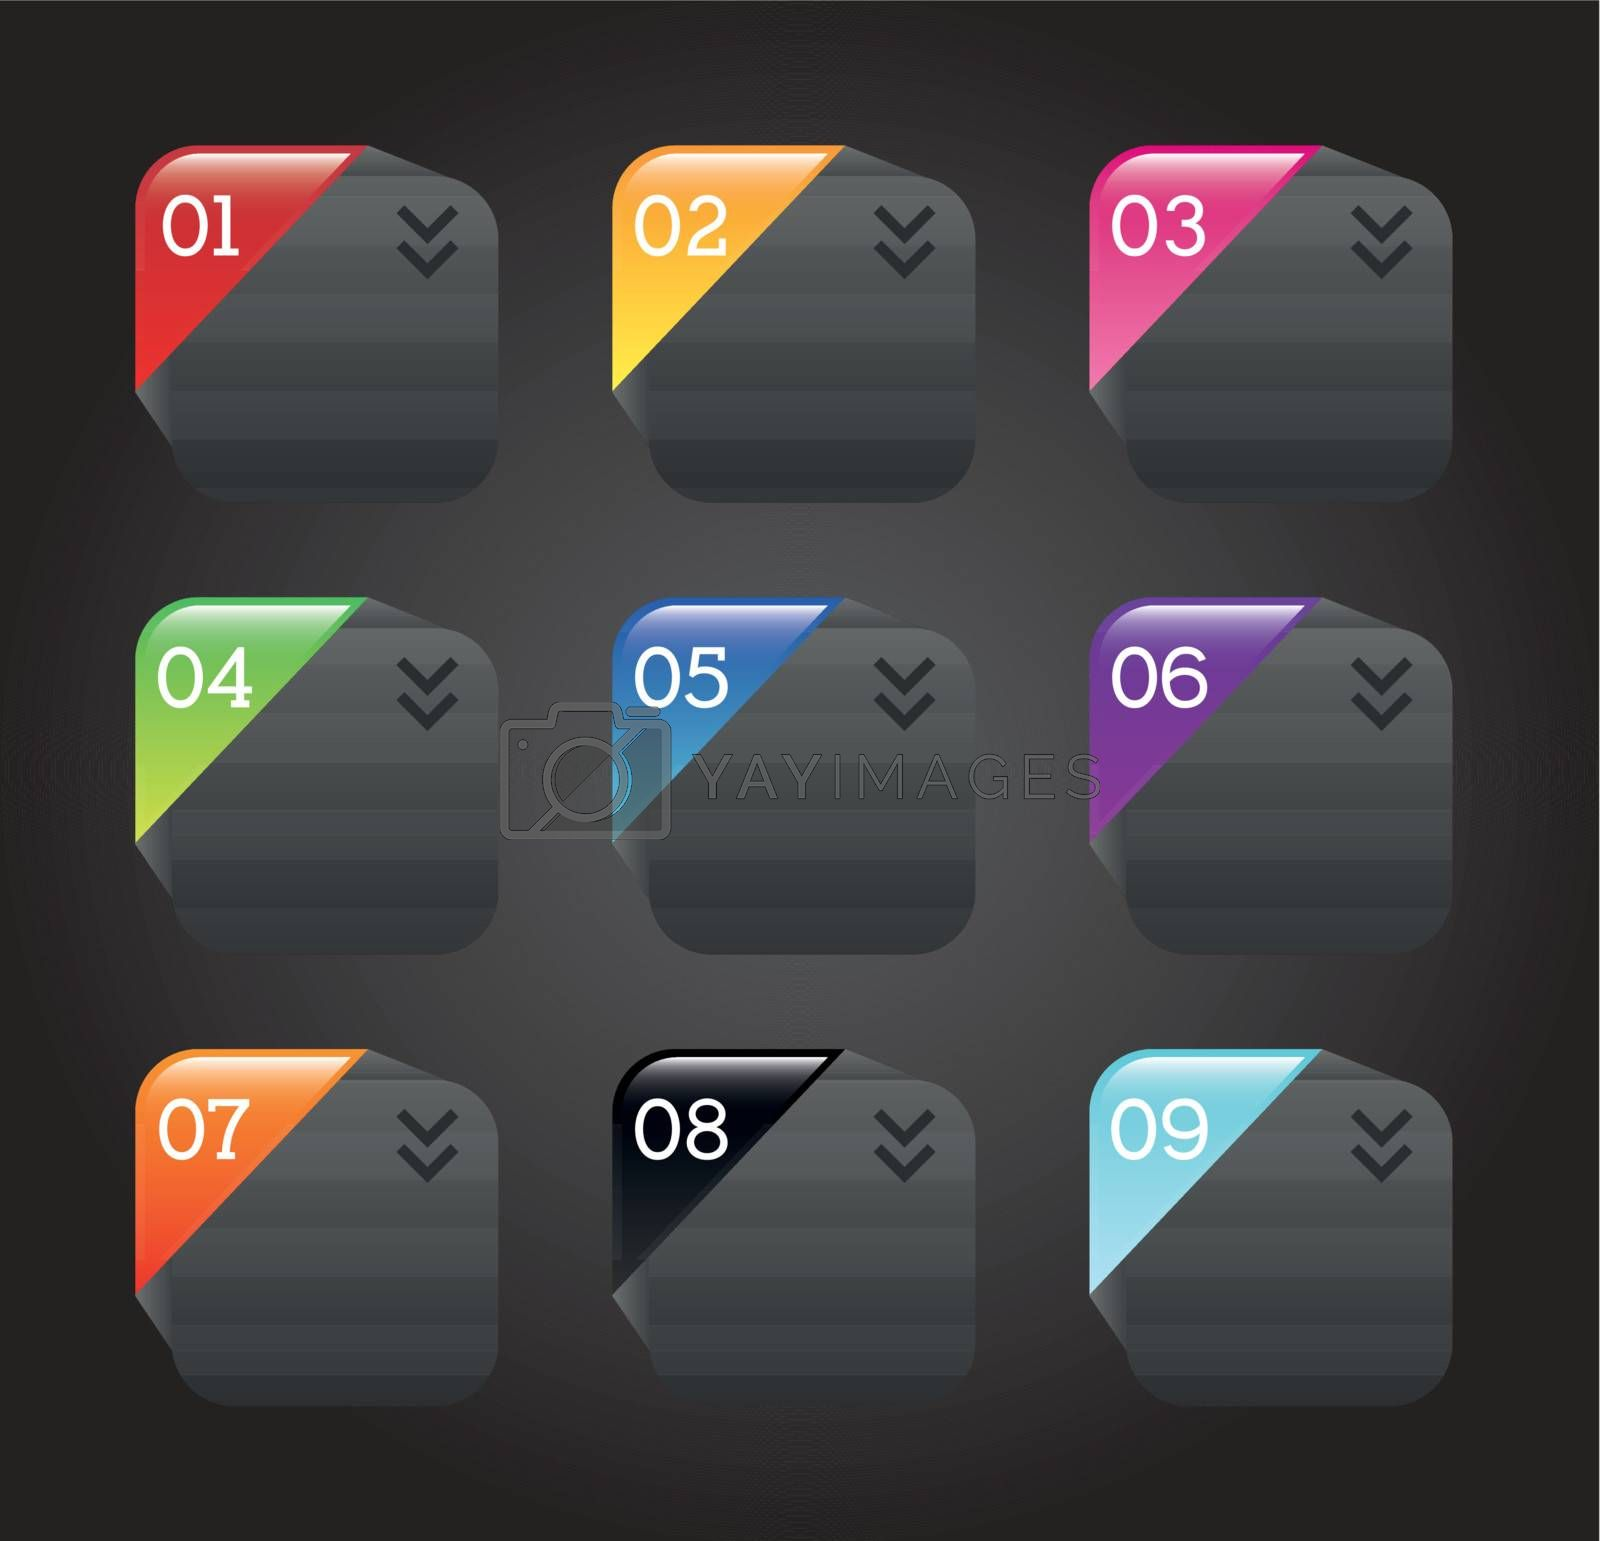 Template numbers over black background vector illustration